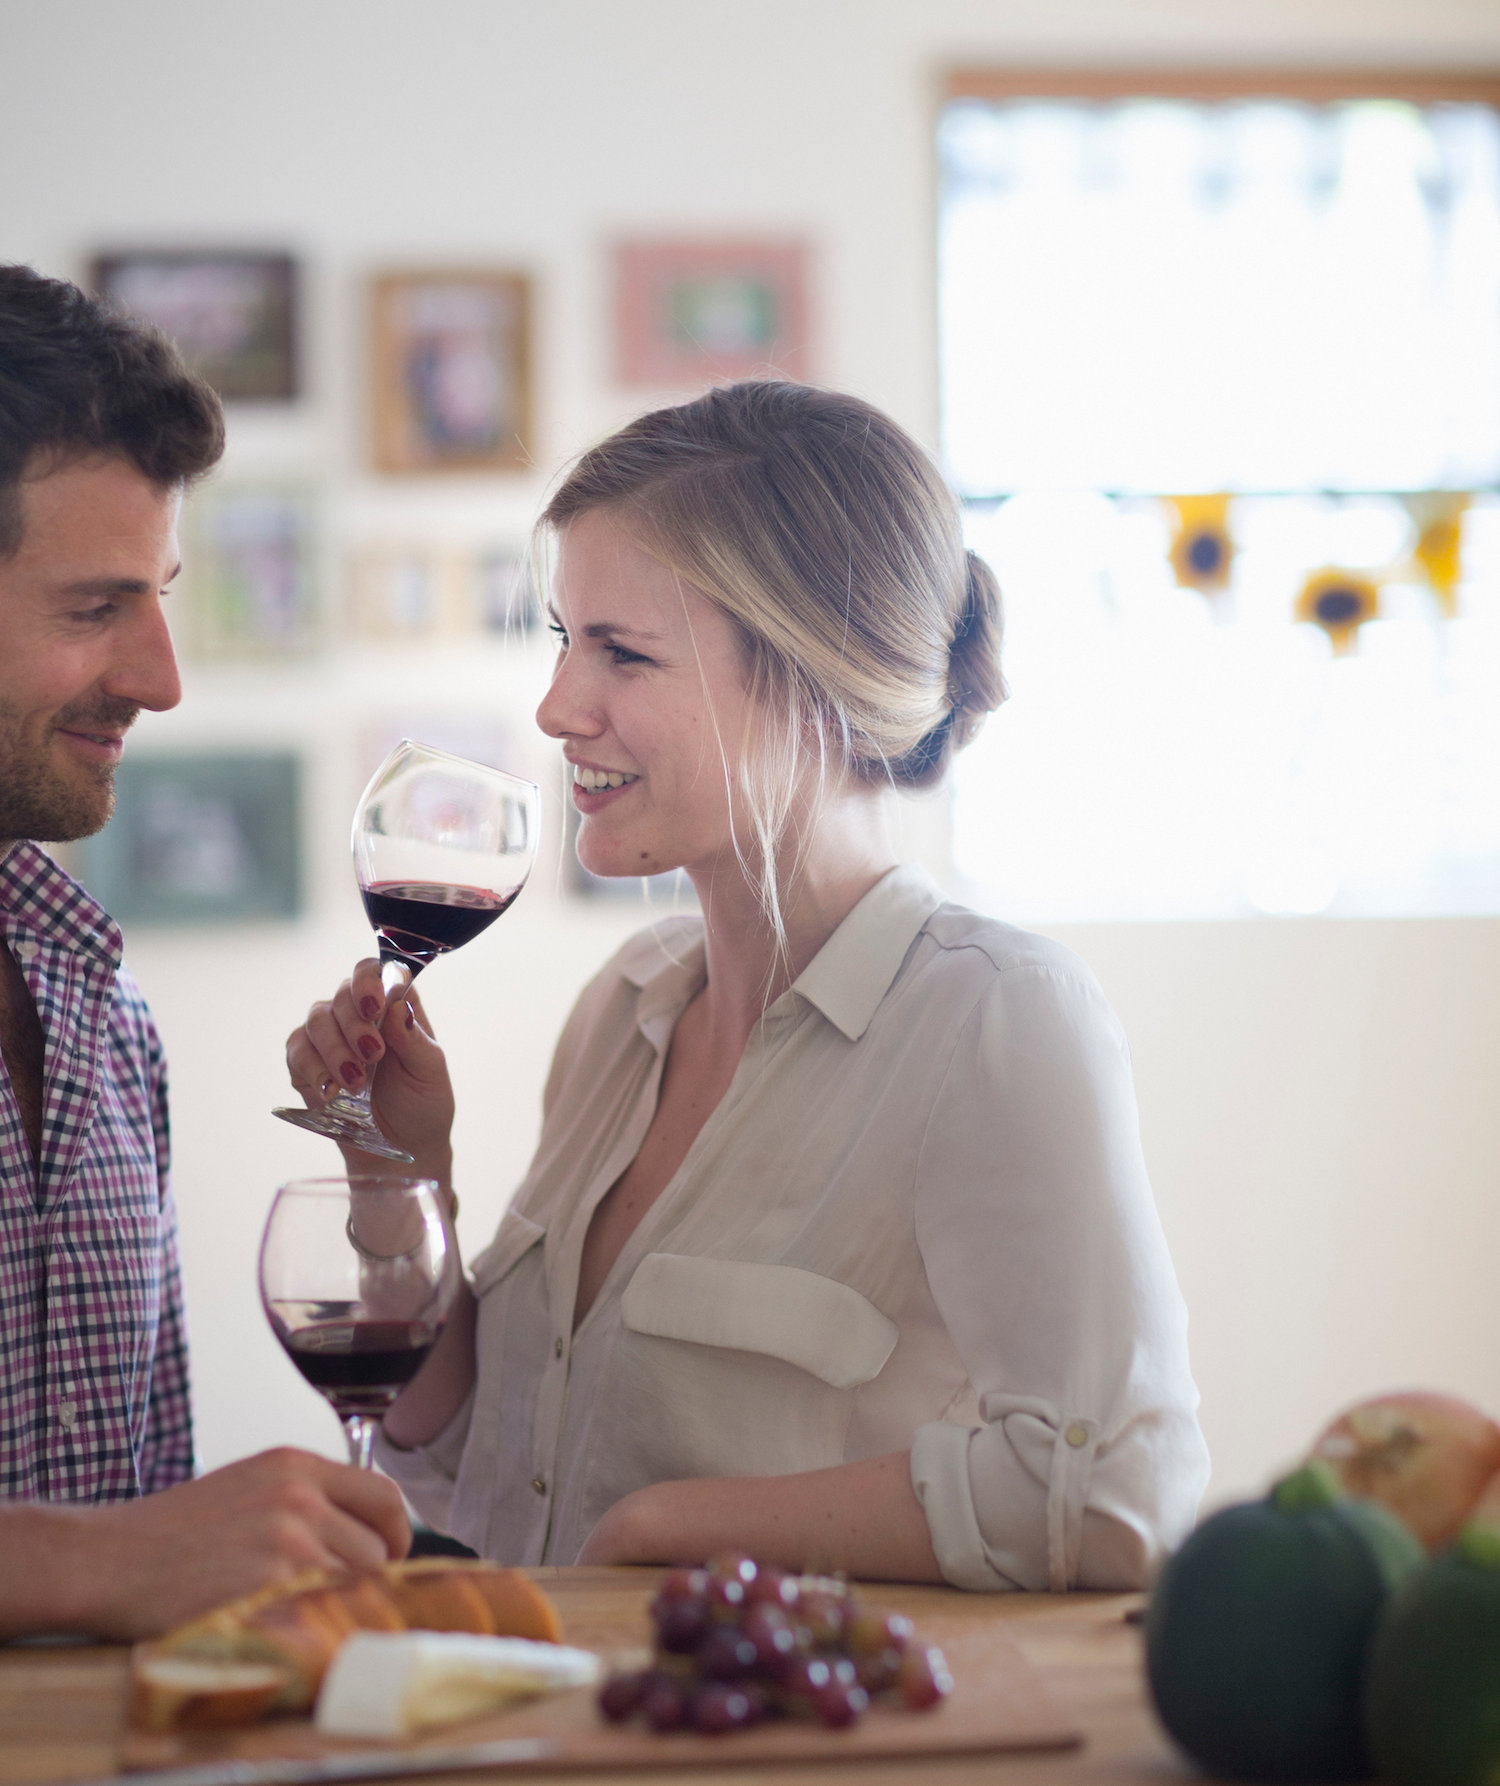 couple-drinking-wine-kitchen